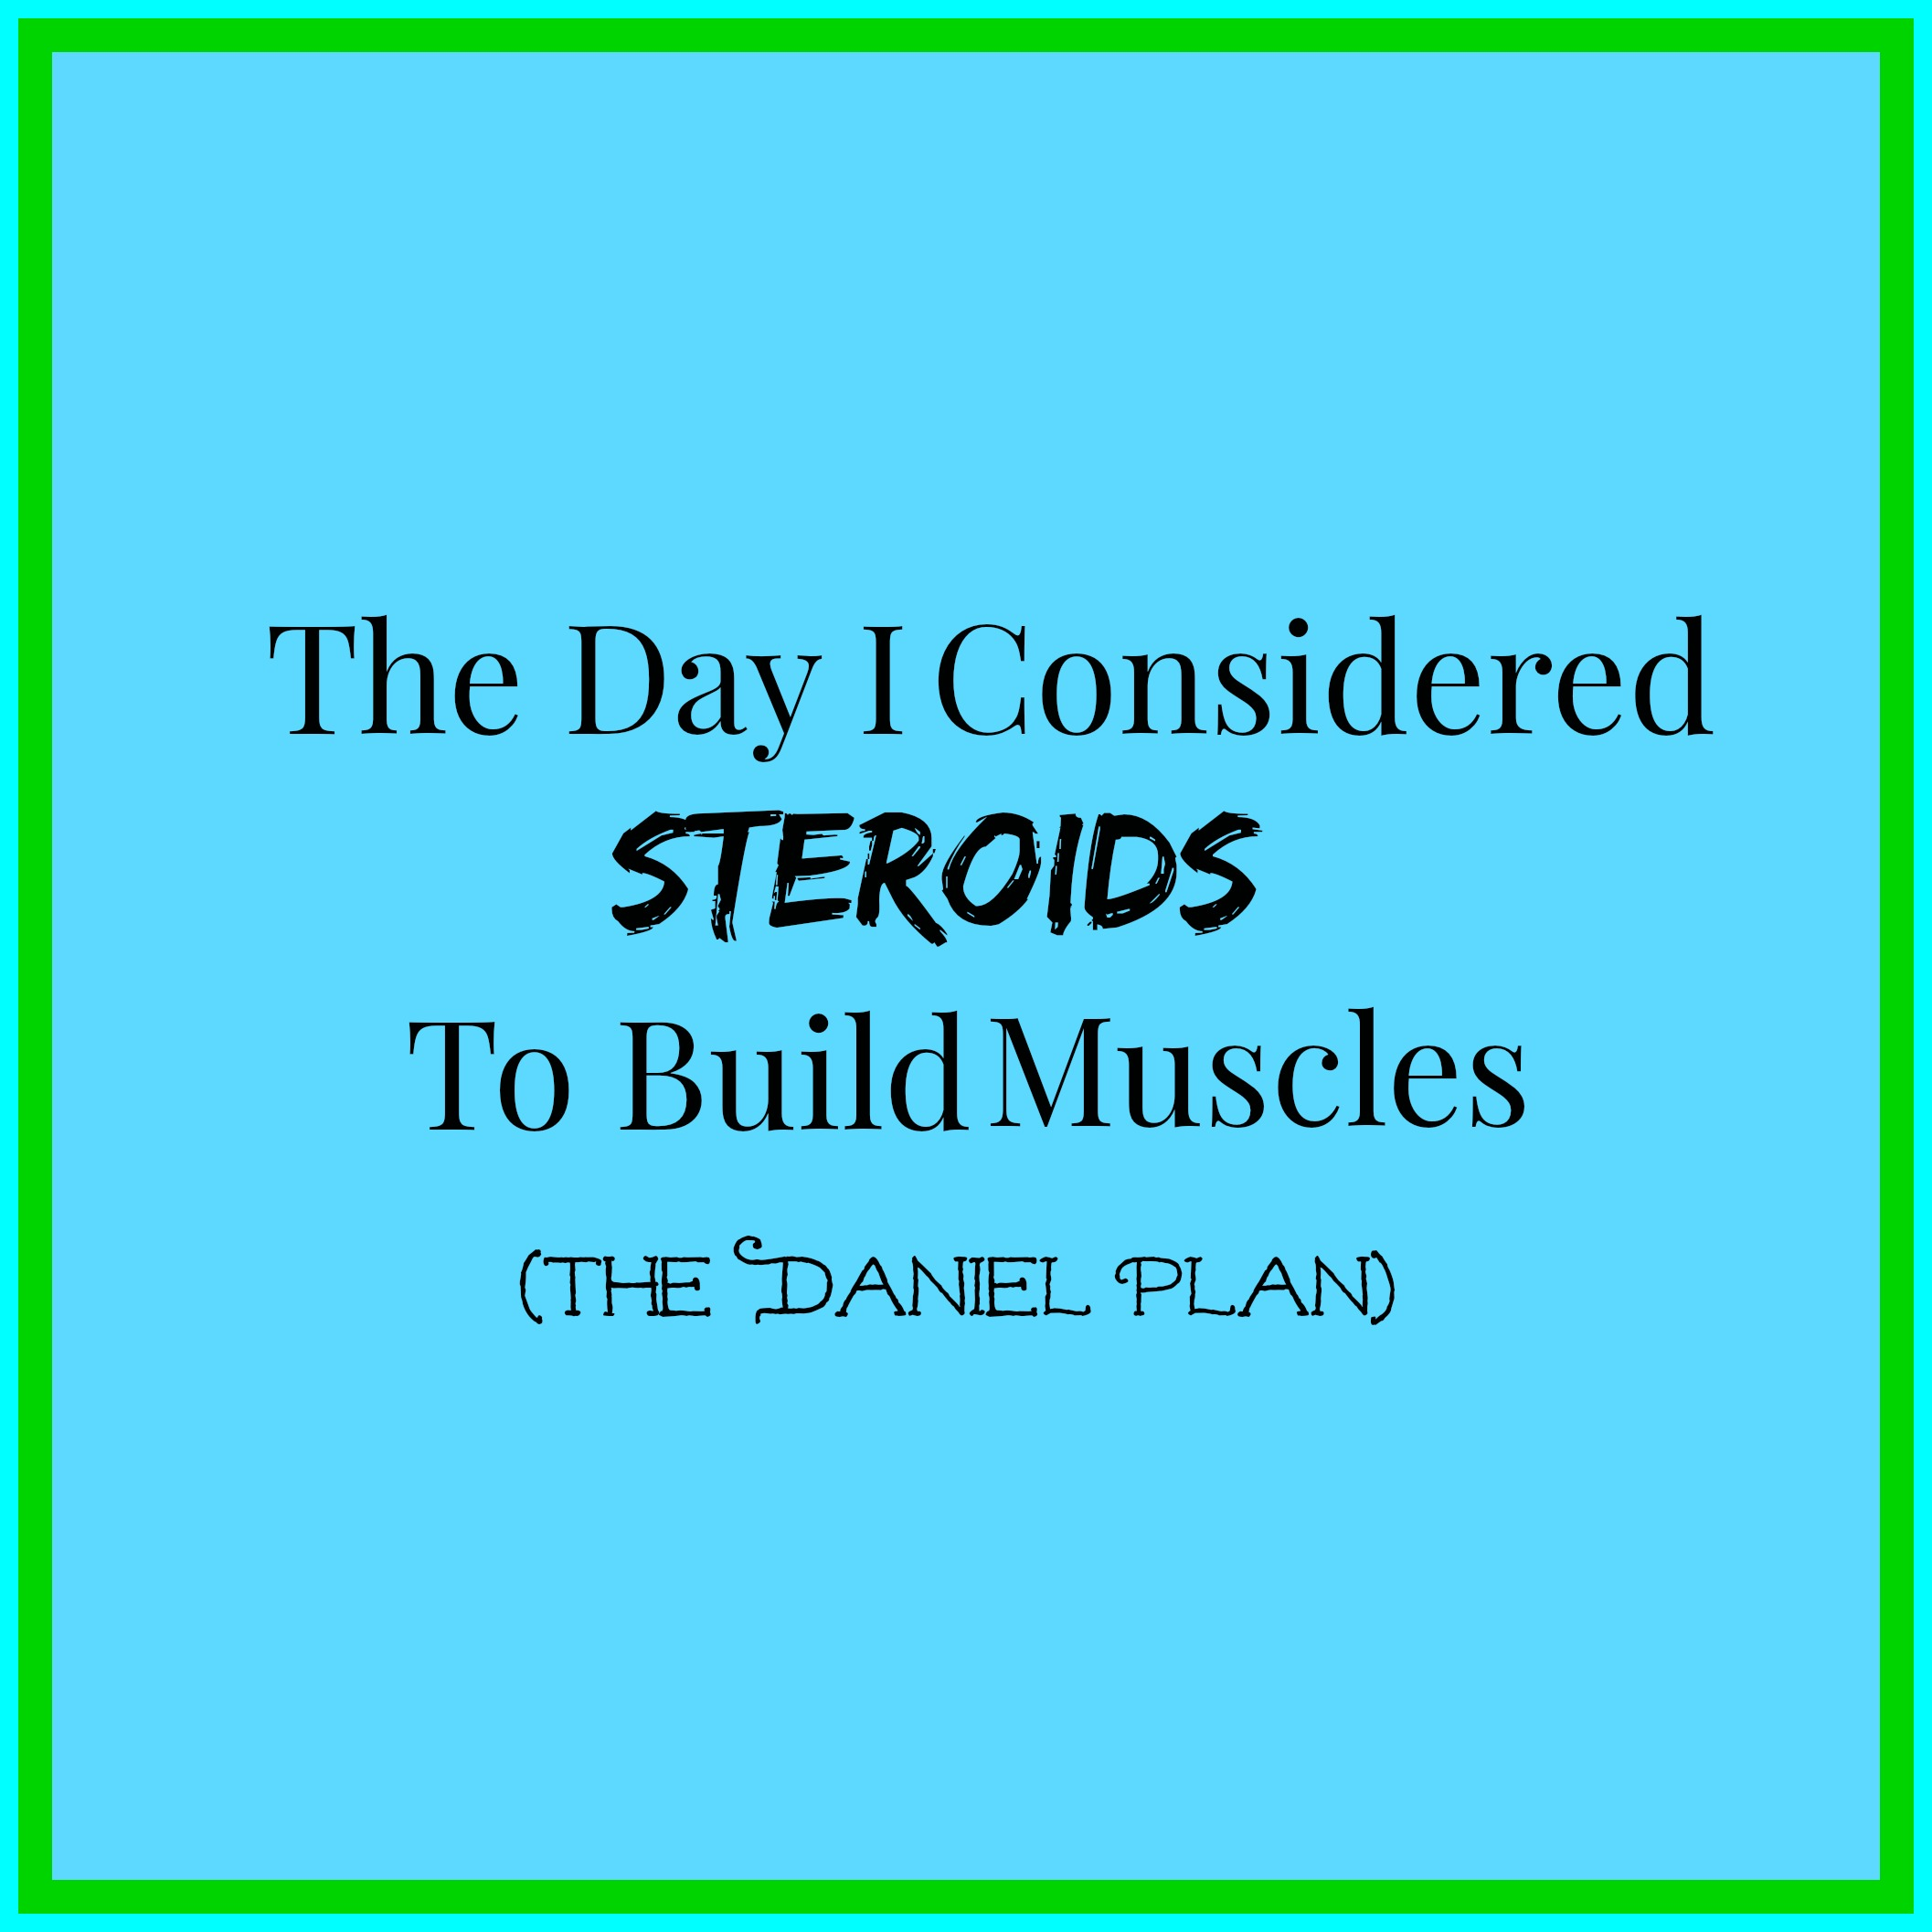 The Day I Considered Steroids To Build Muscles (The Daniel Plan).jpg